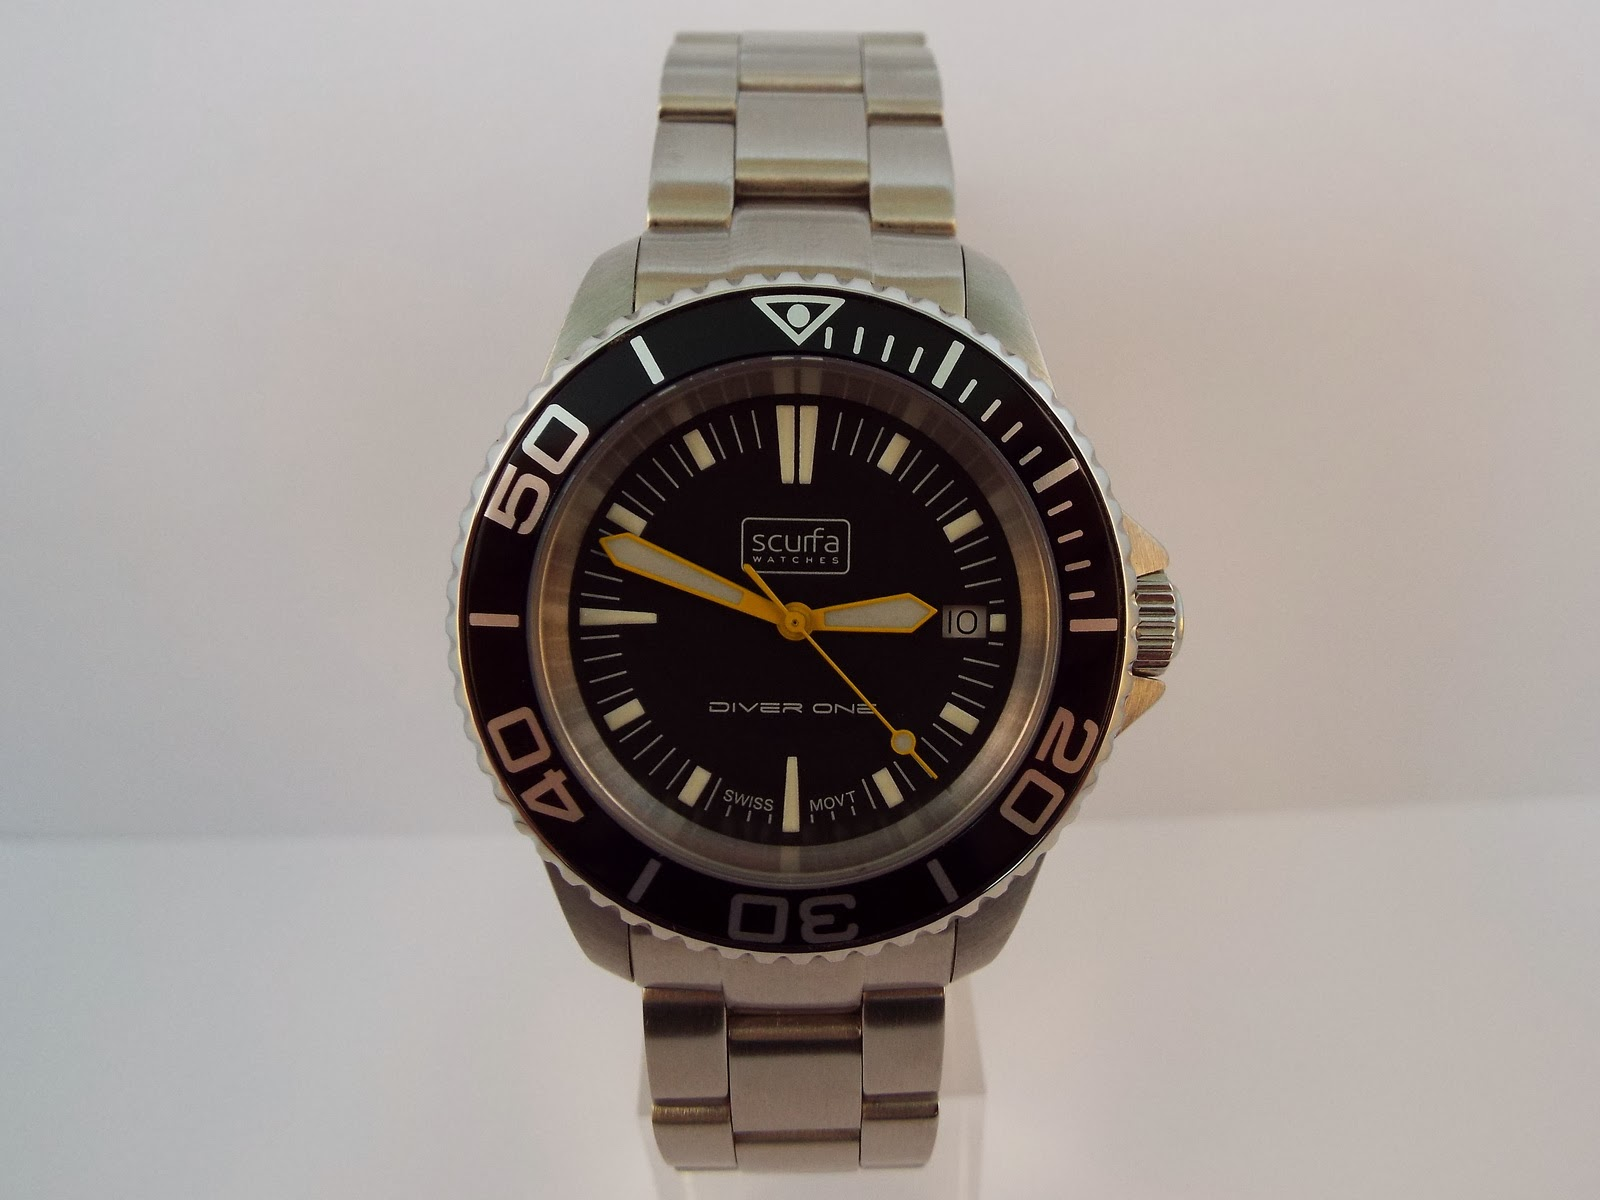 OceanicTime: SCURFA Watches Diver ONE [built for North Sea diving]